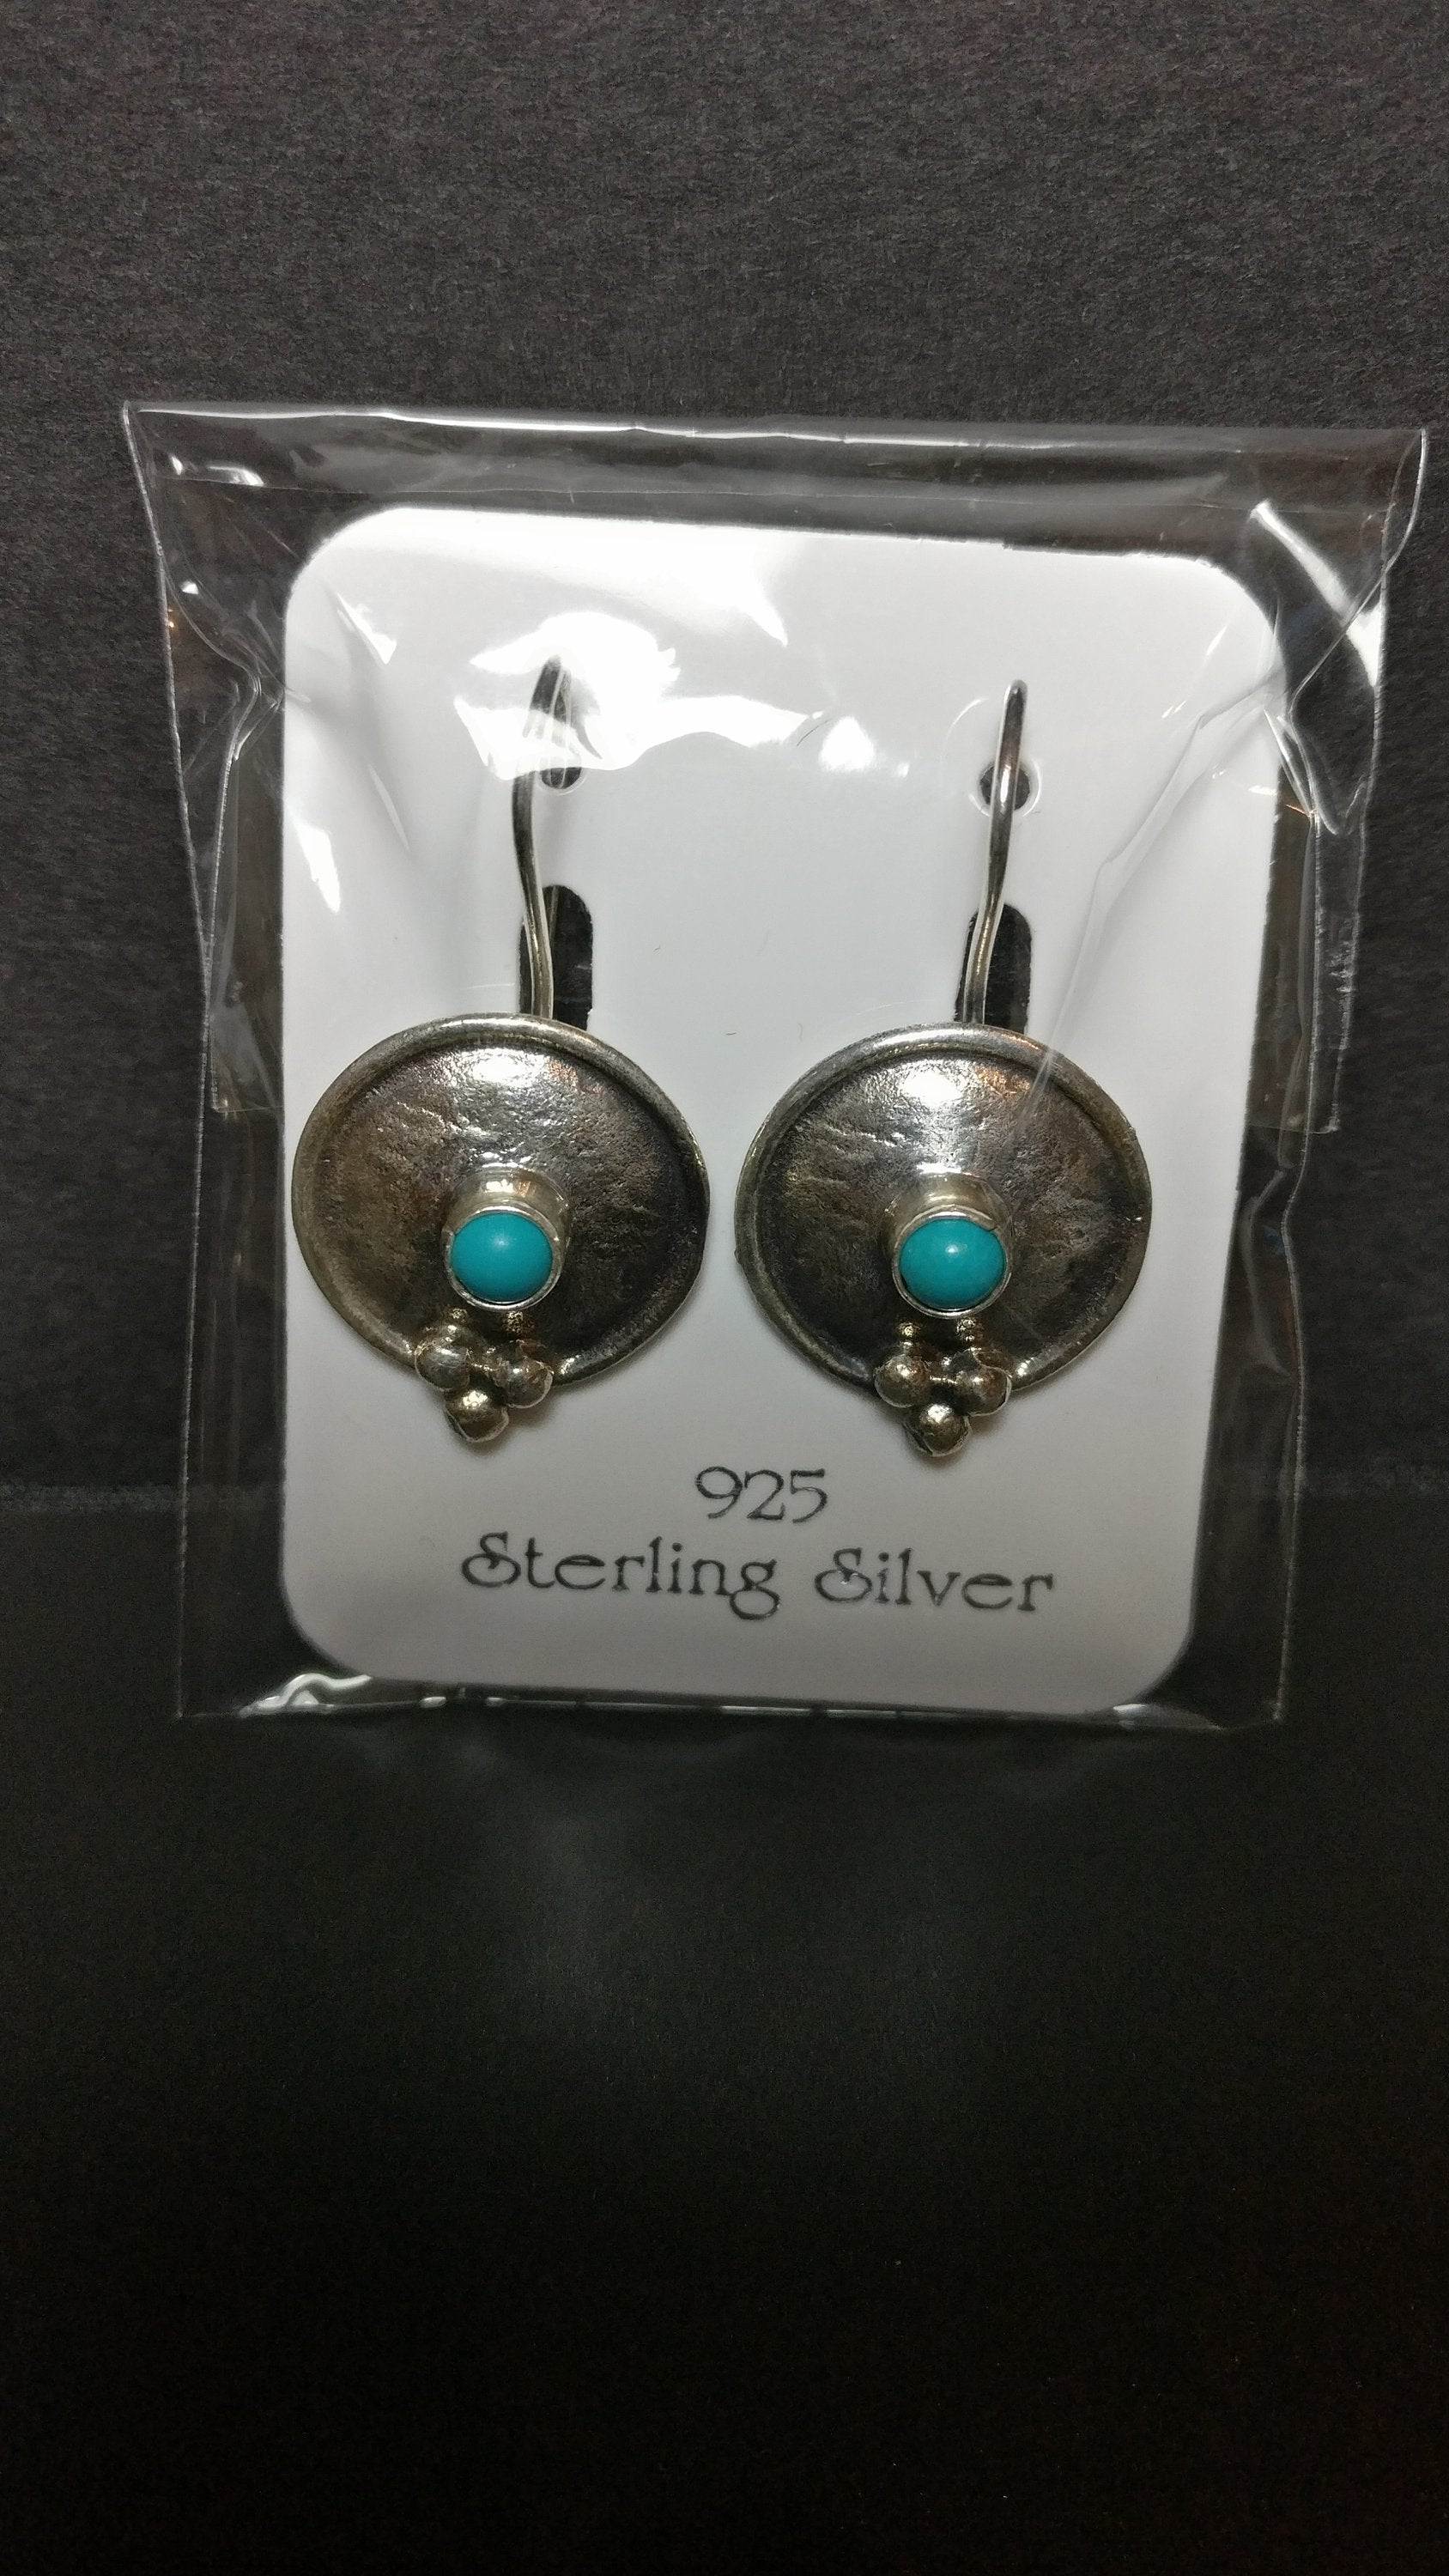 Genuine Turquoise 925 Sterling Silver Design Earrings Gemstone Gift, Firuze, Turkuaz, Genuine Gemstone Earrings 483